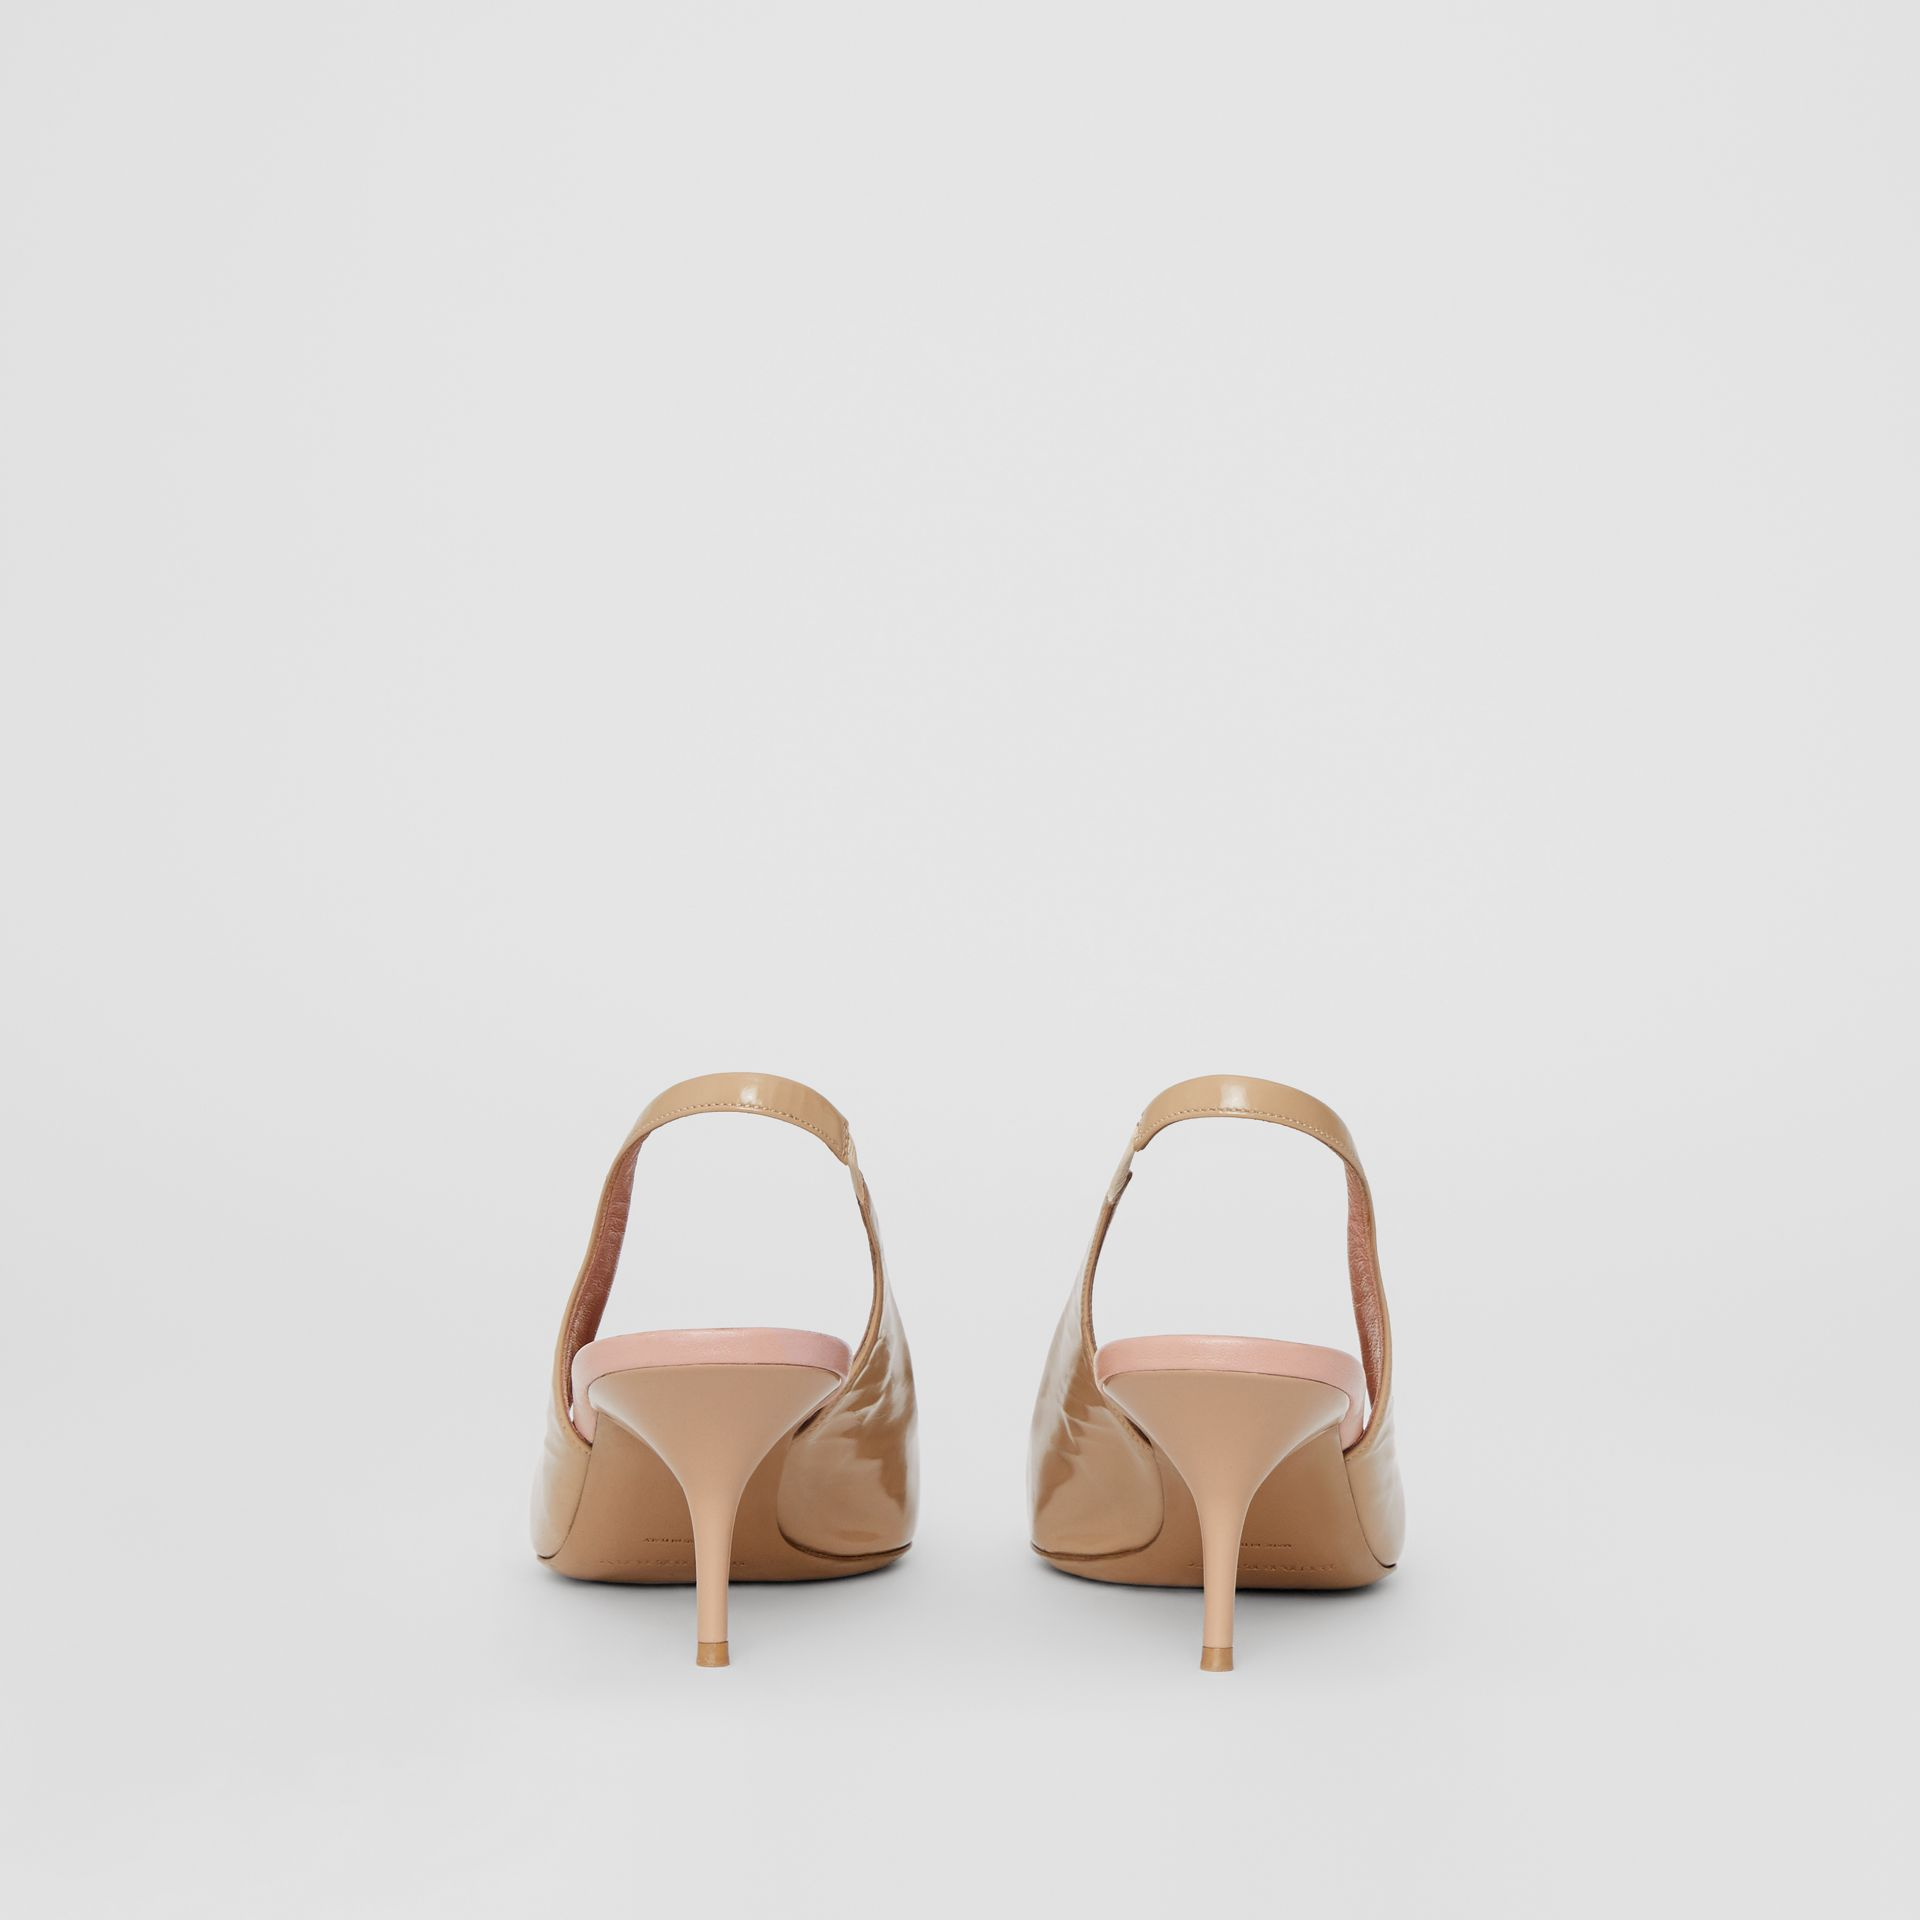 The Leather D-ring Slingback Pump in Nude Blush - Women | Burberry - gallery image 4